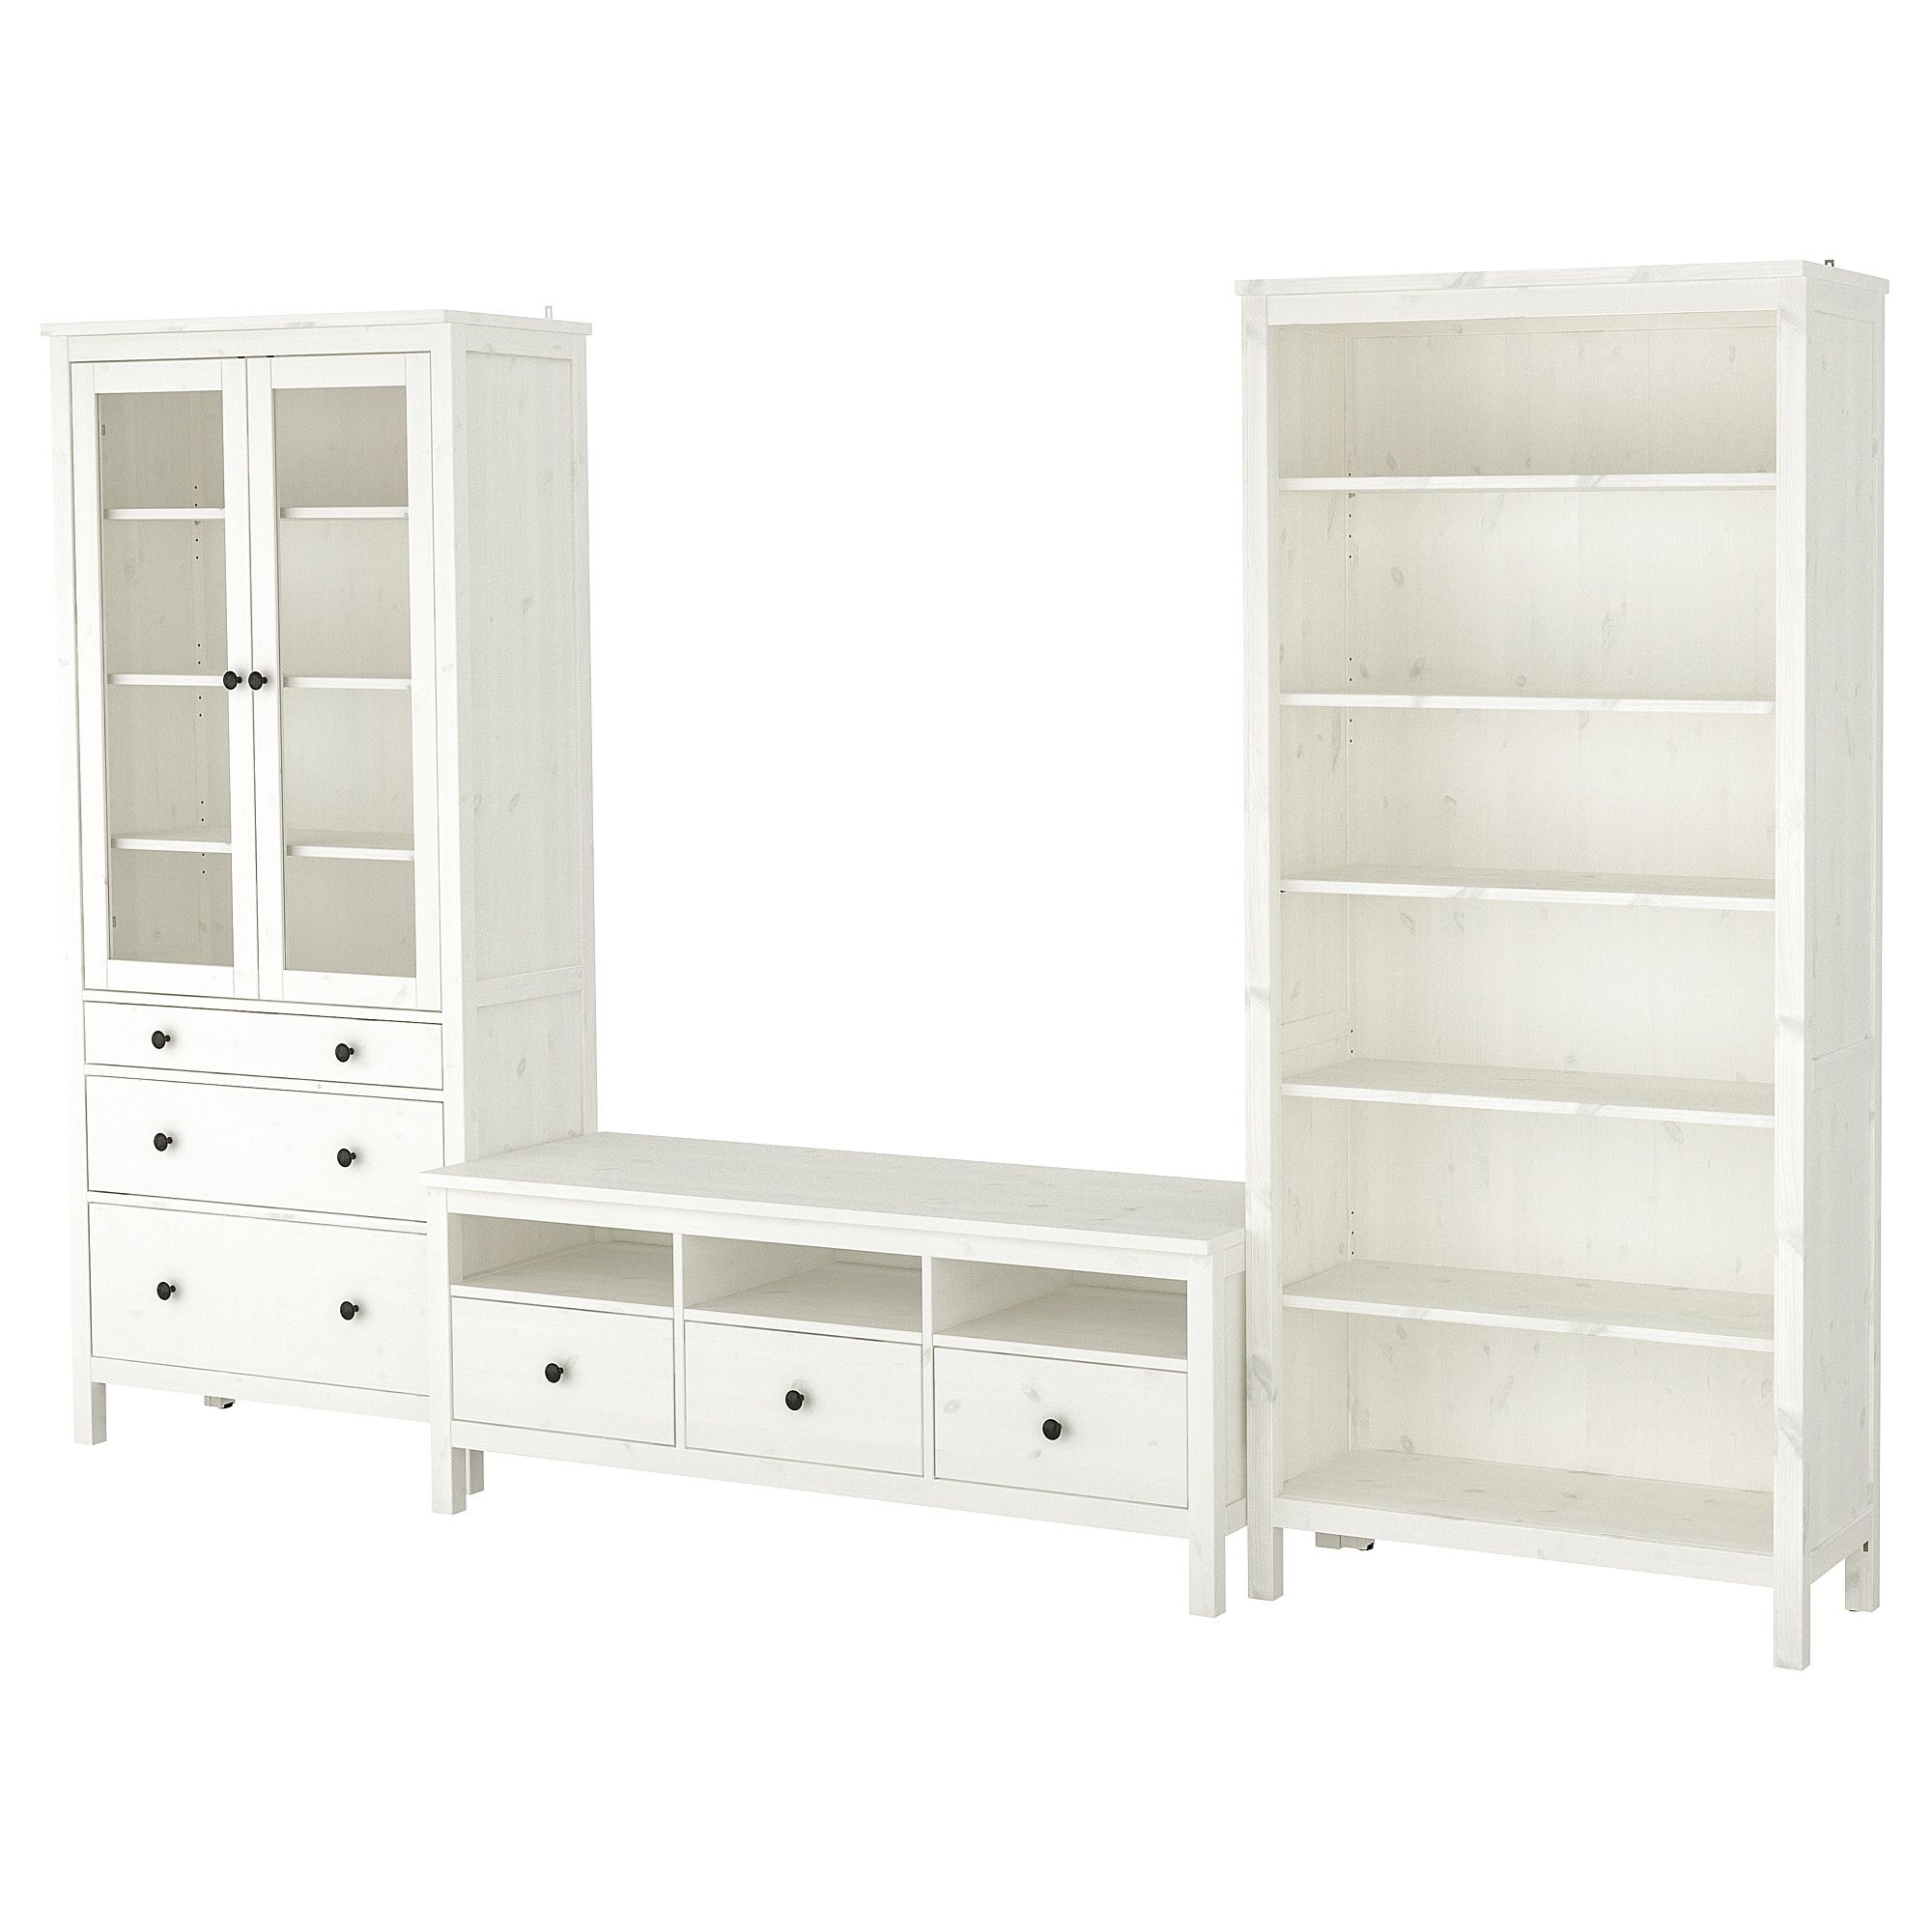 Tv stand ikea hemnes with glass on the